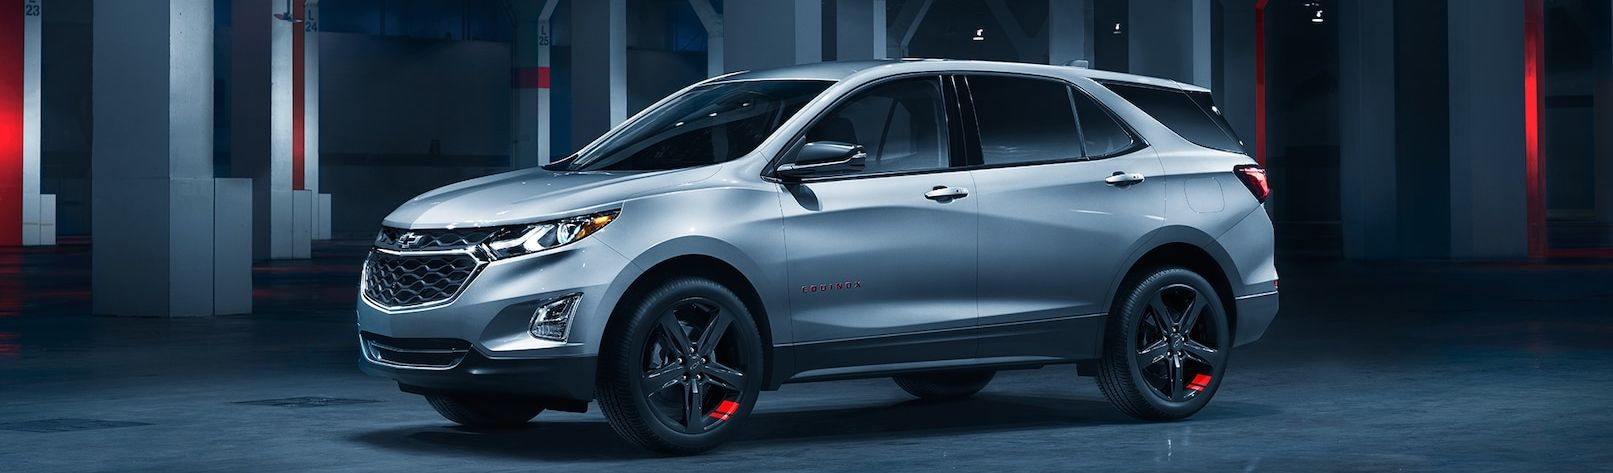 2019 Chevrolet Equinox Leasing near Escondido, CA